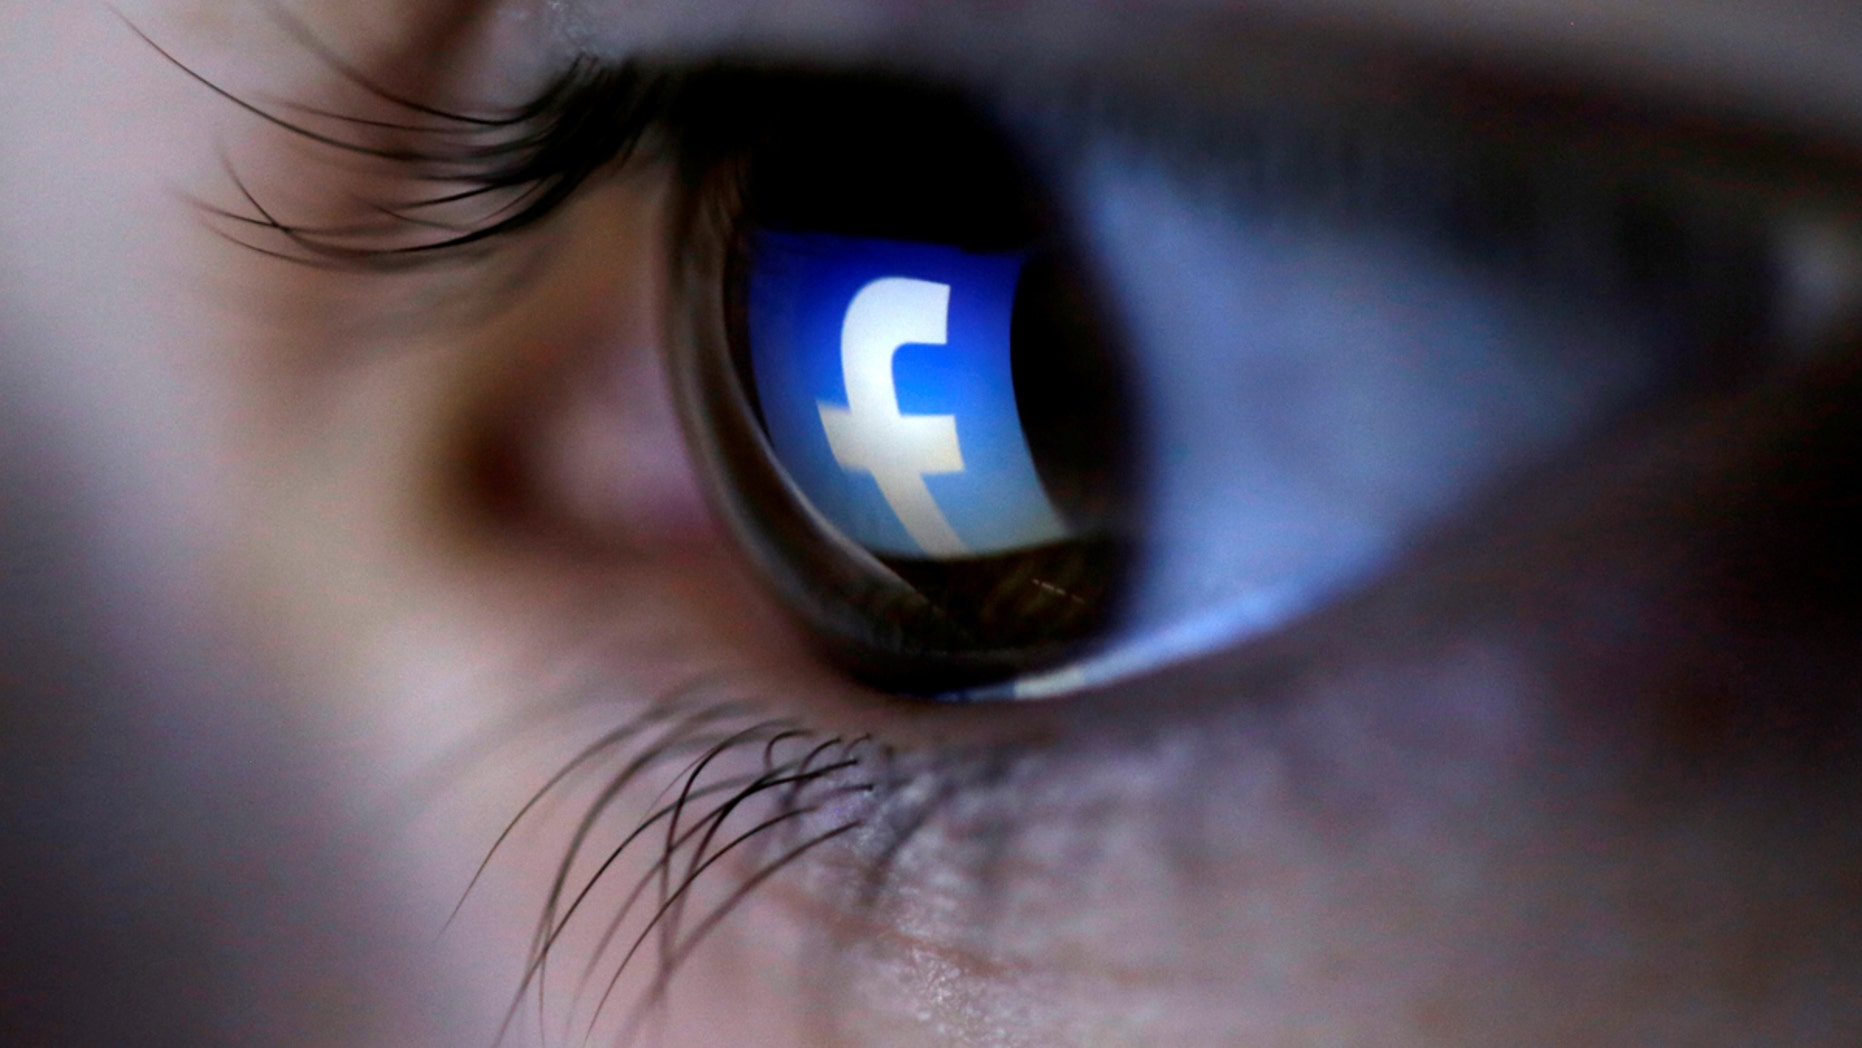 FILE PHOTO: A picture illustration shows a Facebook logo reflected in a person's eye, in Zenica, March 13, 2015. REUTERS/Dado Ruvic/Illustration